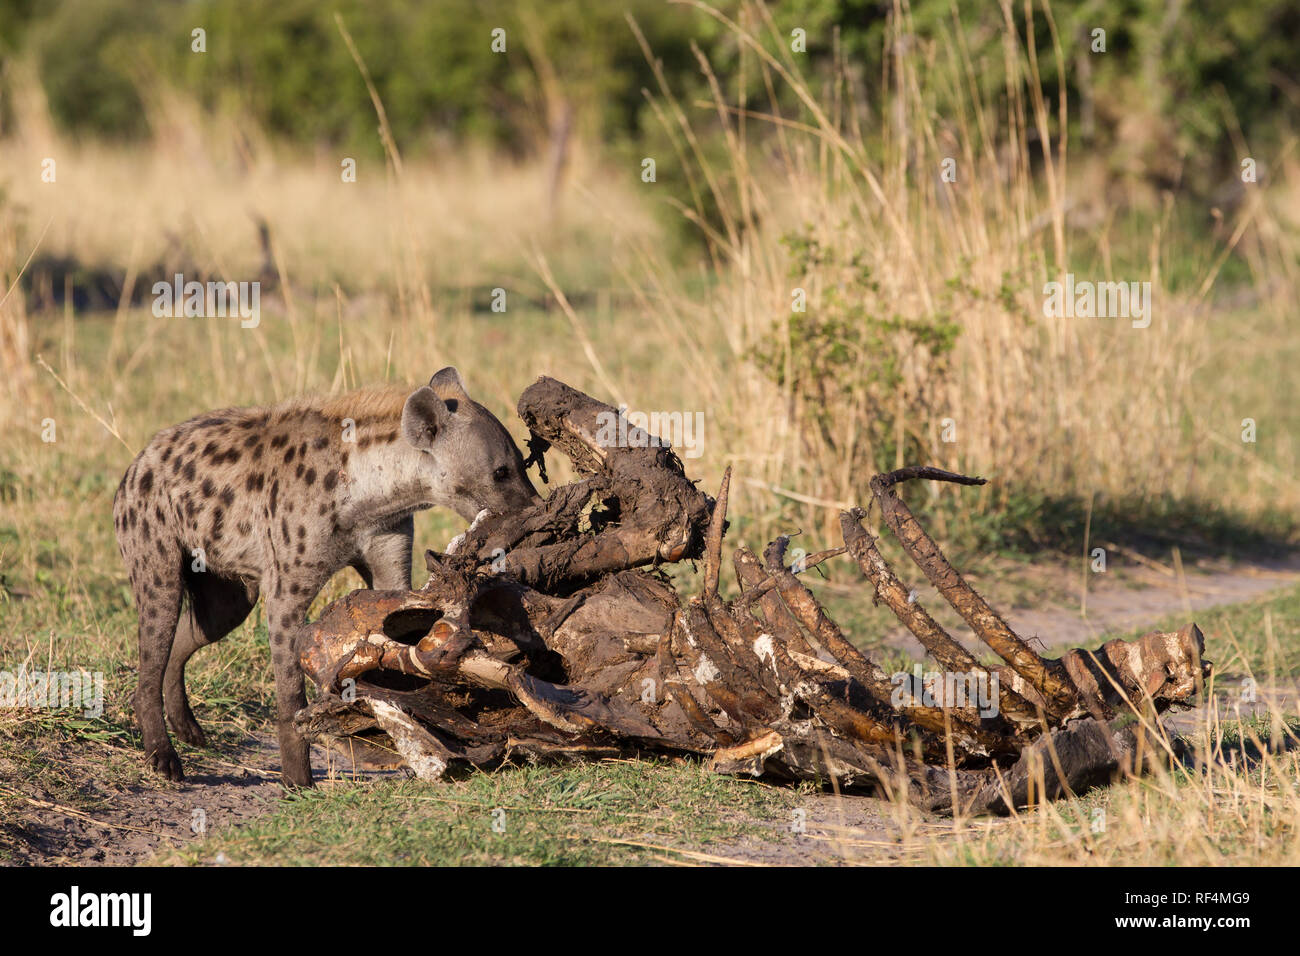 Spotted hyene, Crocuta crocuta, act as both scavengers and hunters in the savanna flood plains of the Linyanti River in northern Botswana. When flood  - Stock Image